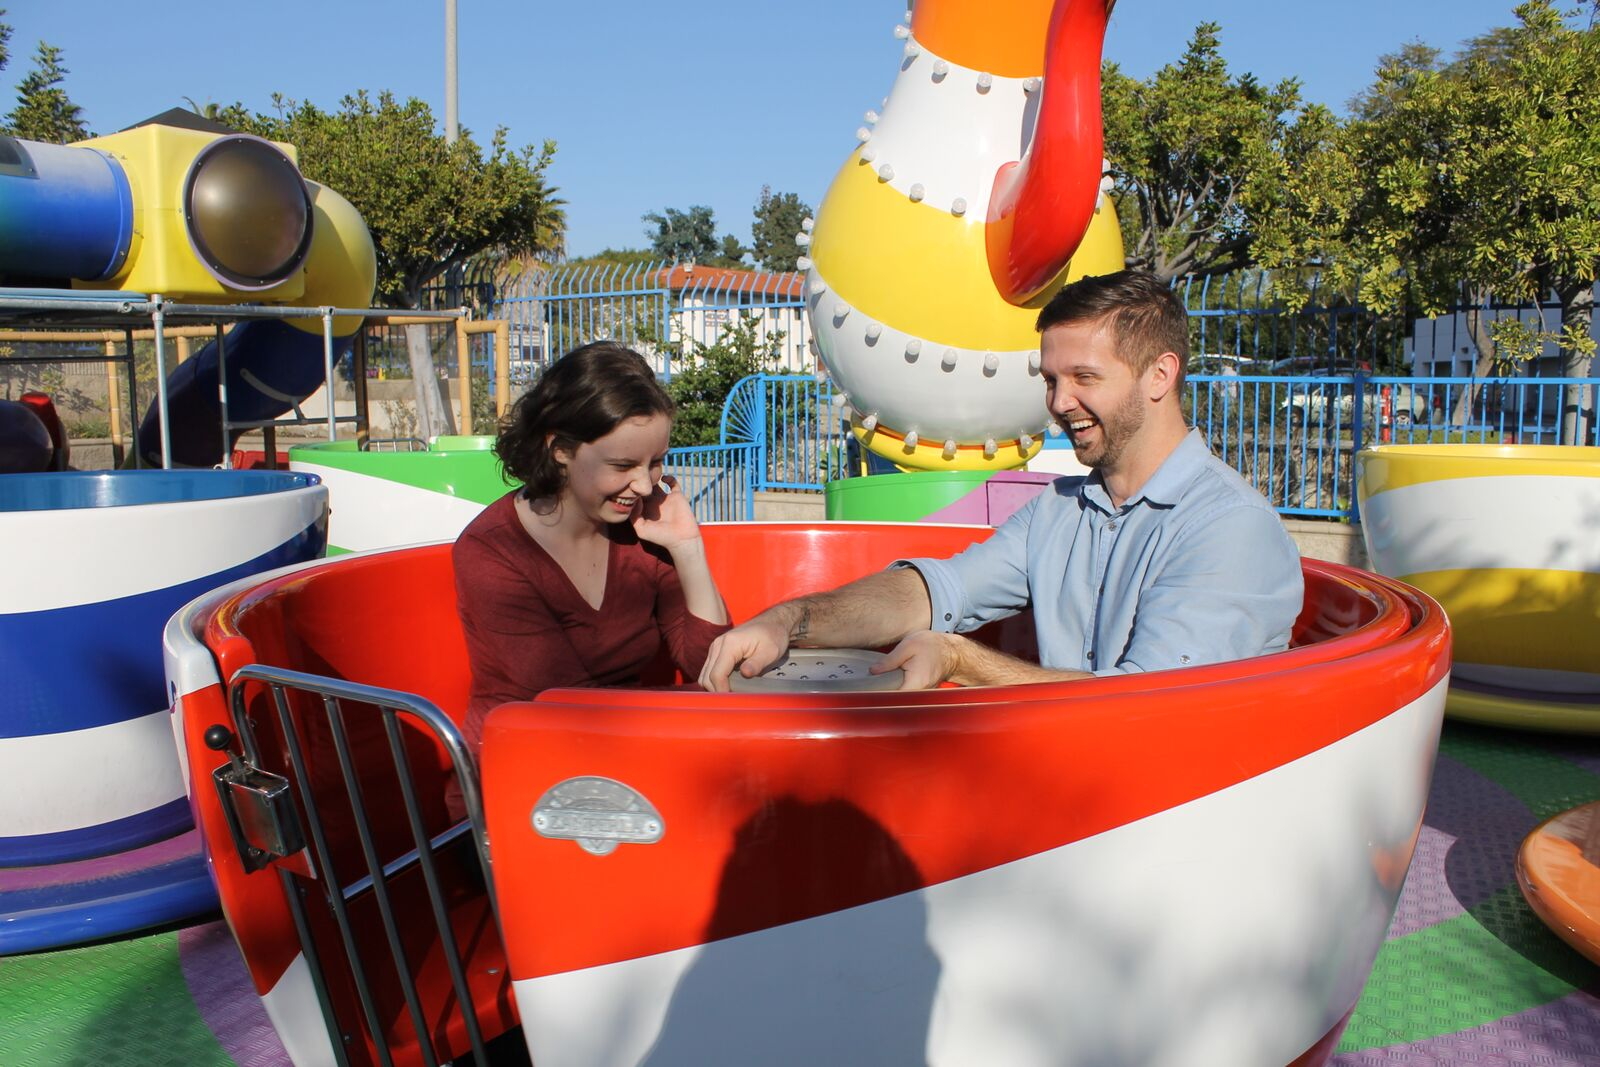 The Best Outdoor Kiddie Rides in Vista